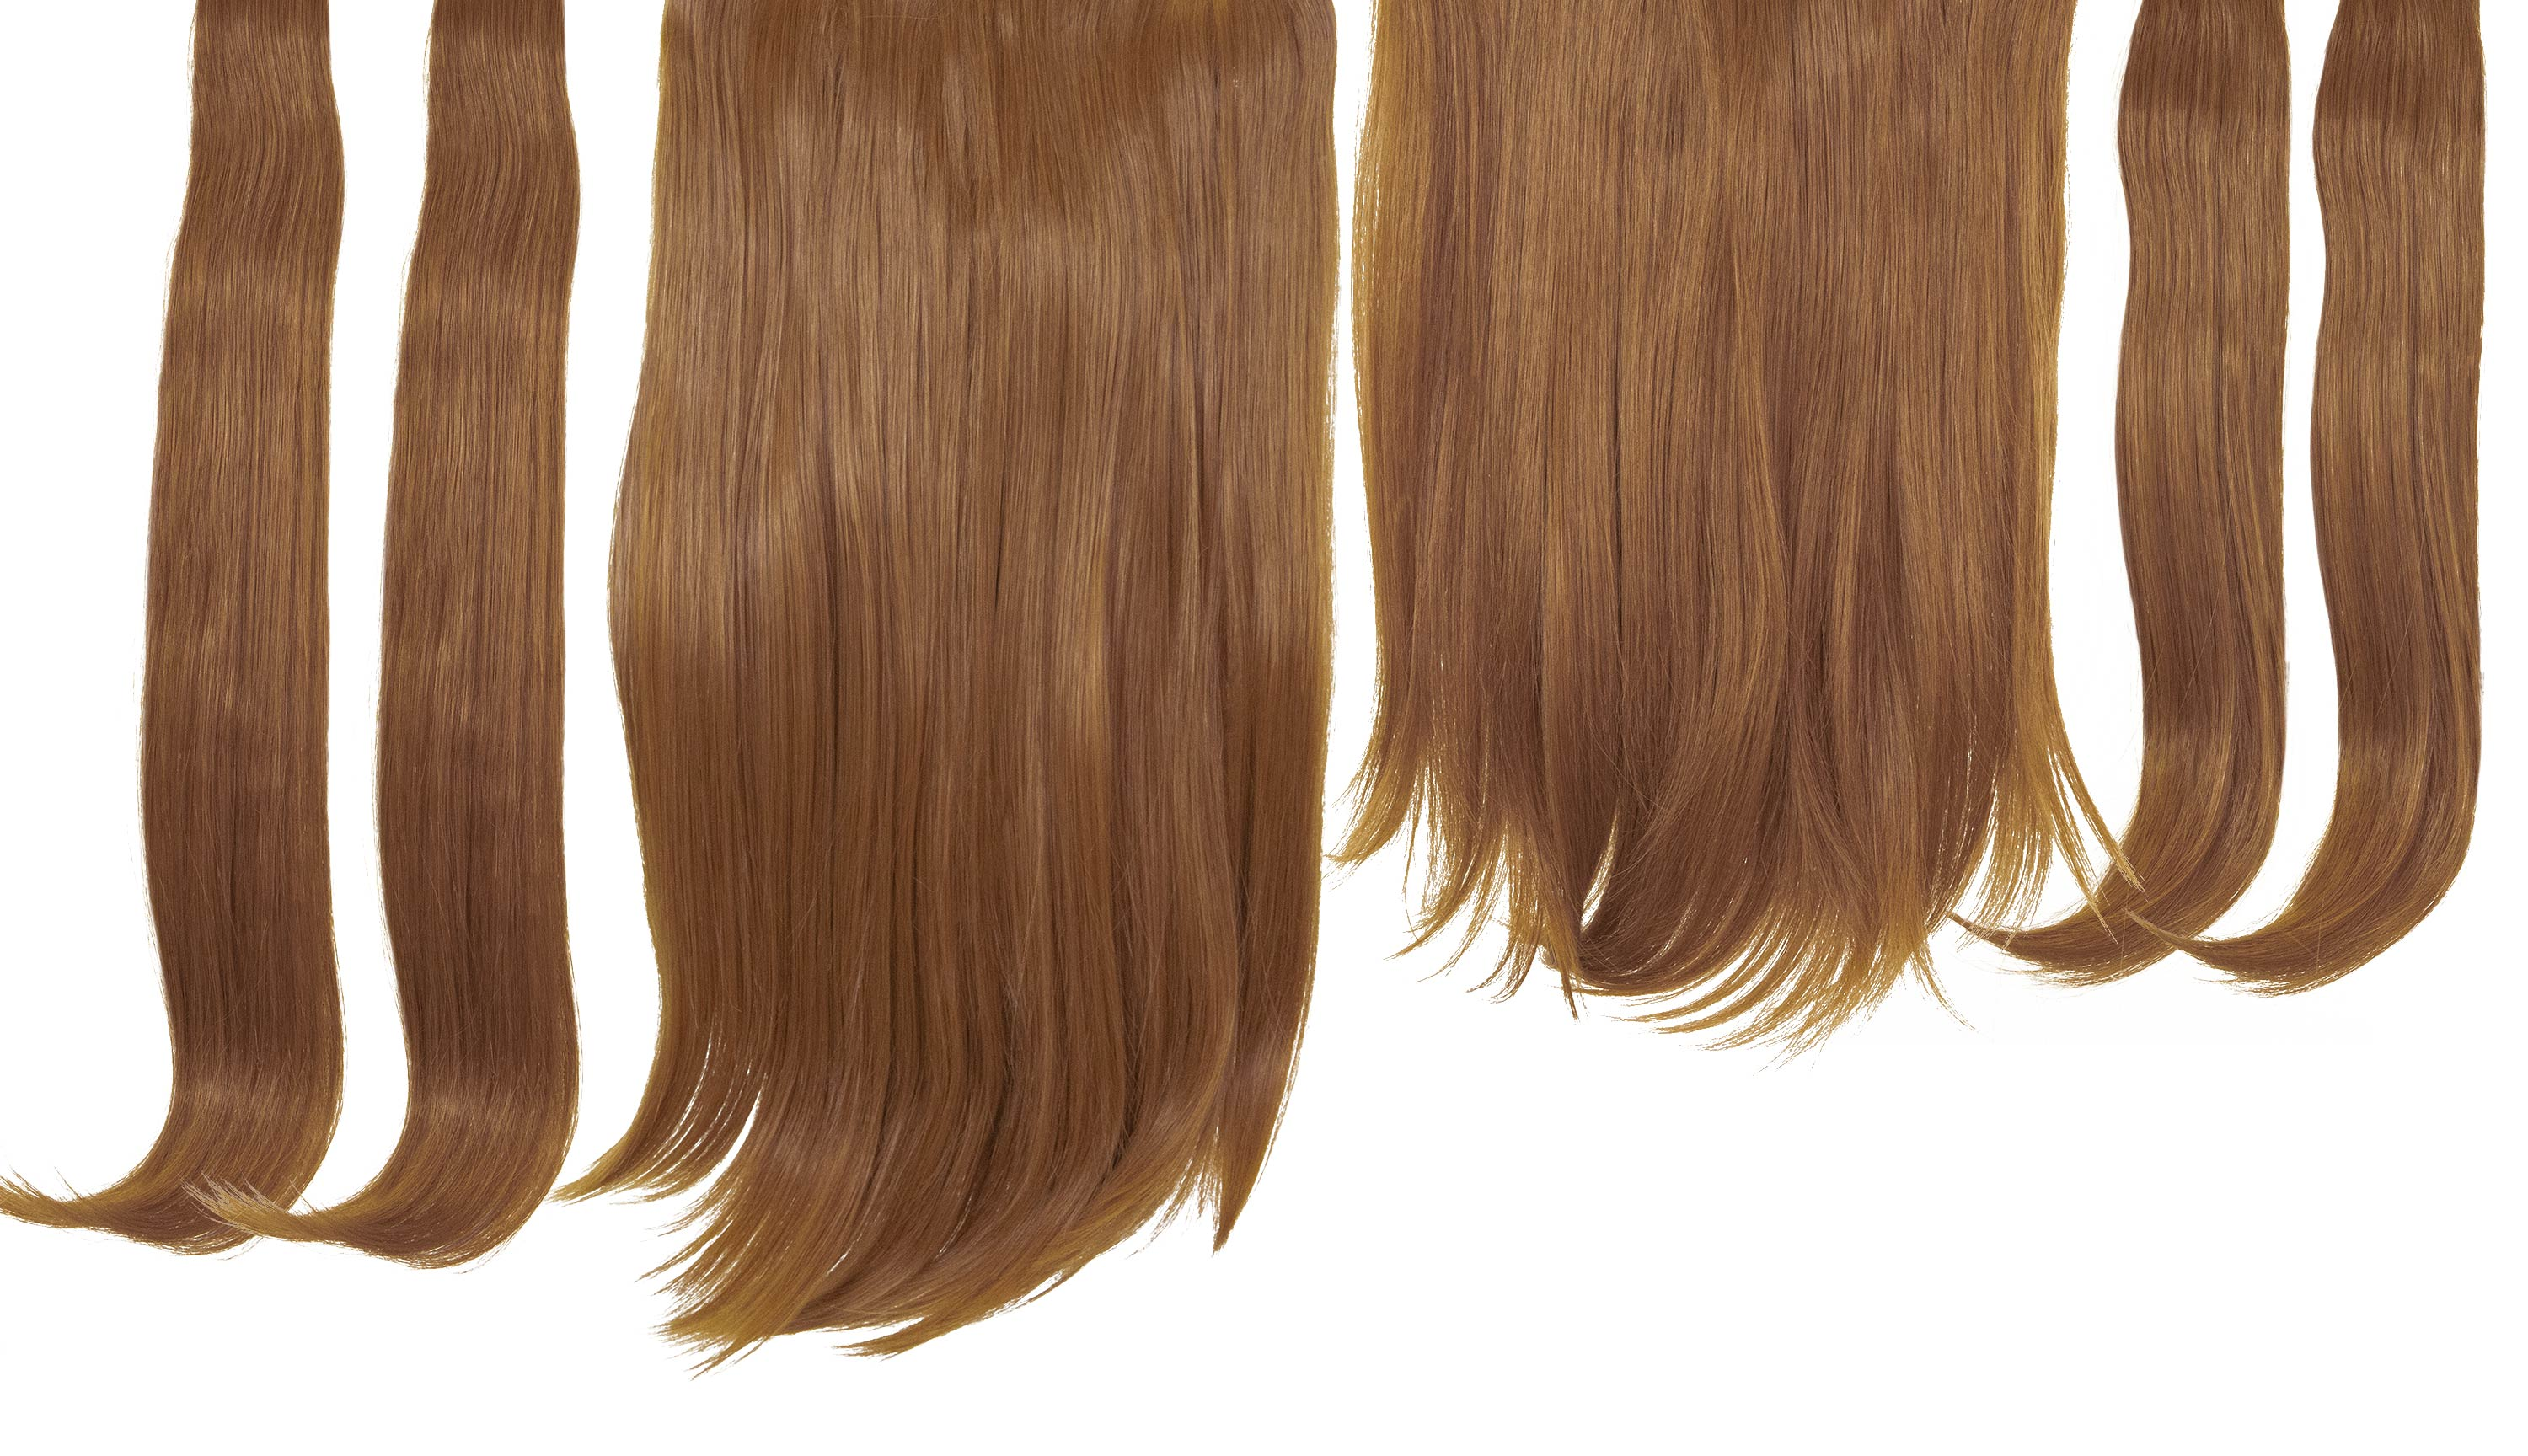 6 in 1 Clip In Hair Extensions - Copper